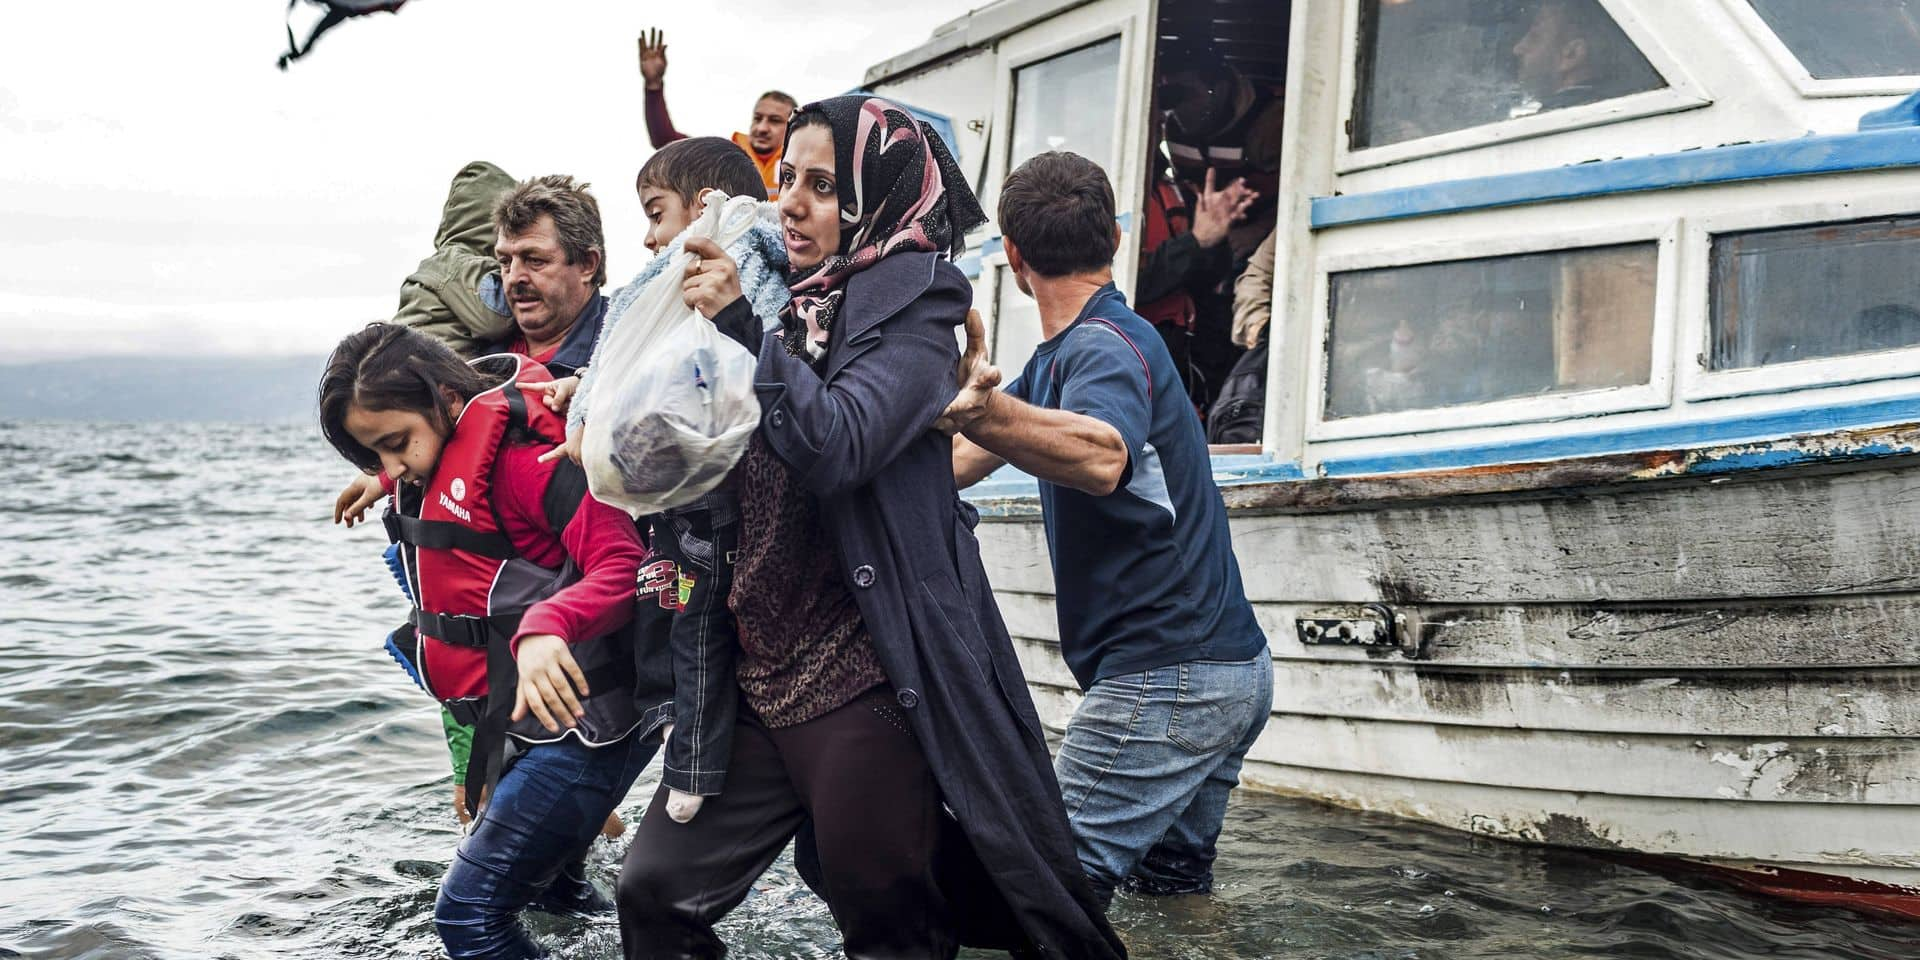 Refugees and migrants arriving on island of Lesbos, Greece GRIECHENLAND, 09.2015, Insel /Island of/ Lesbos. Internation